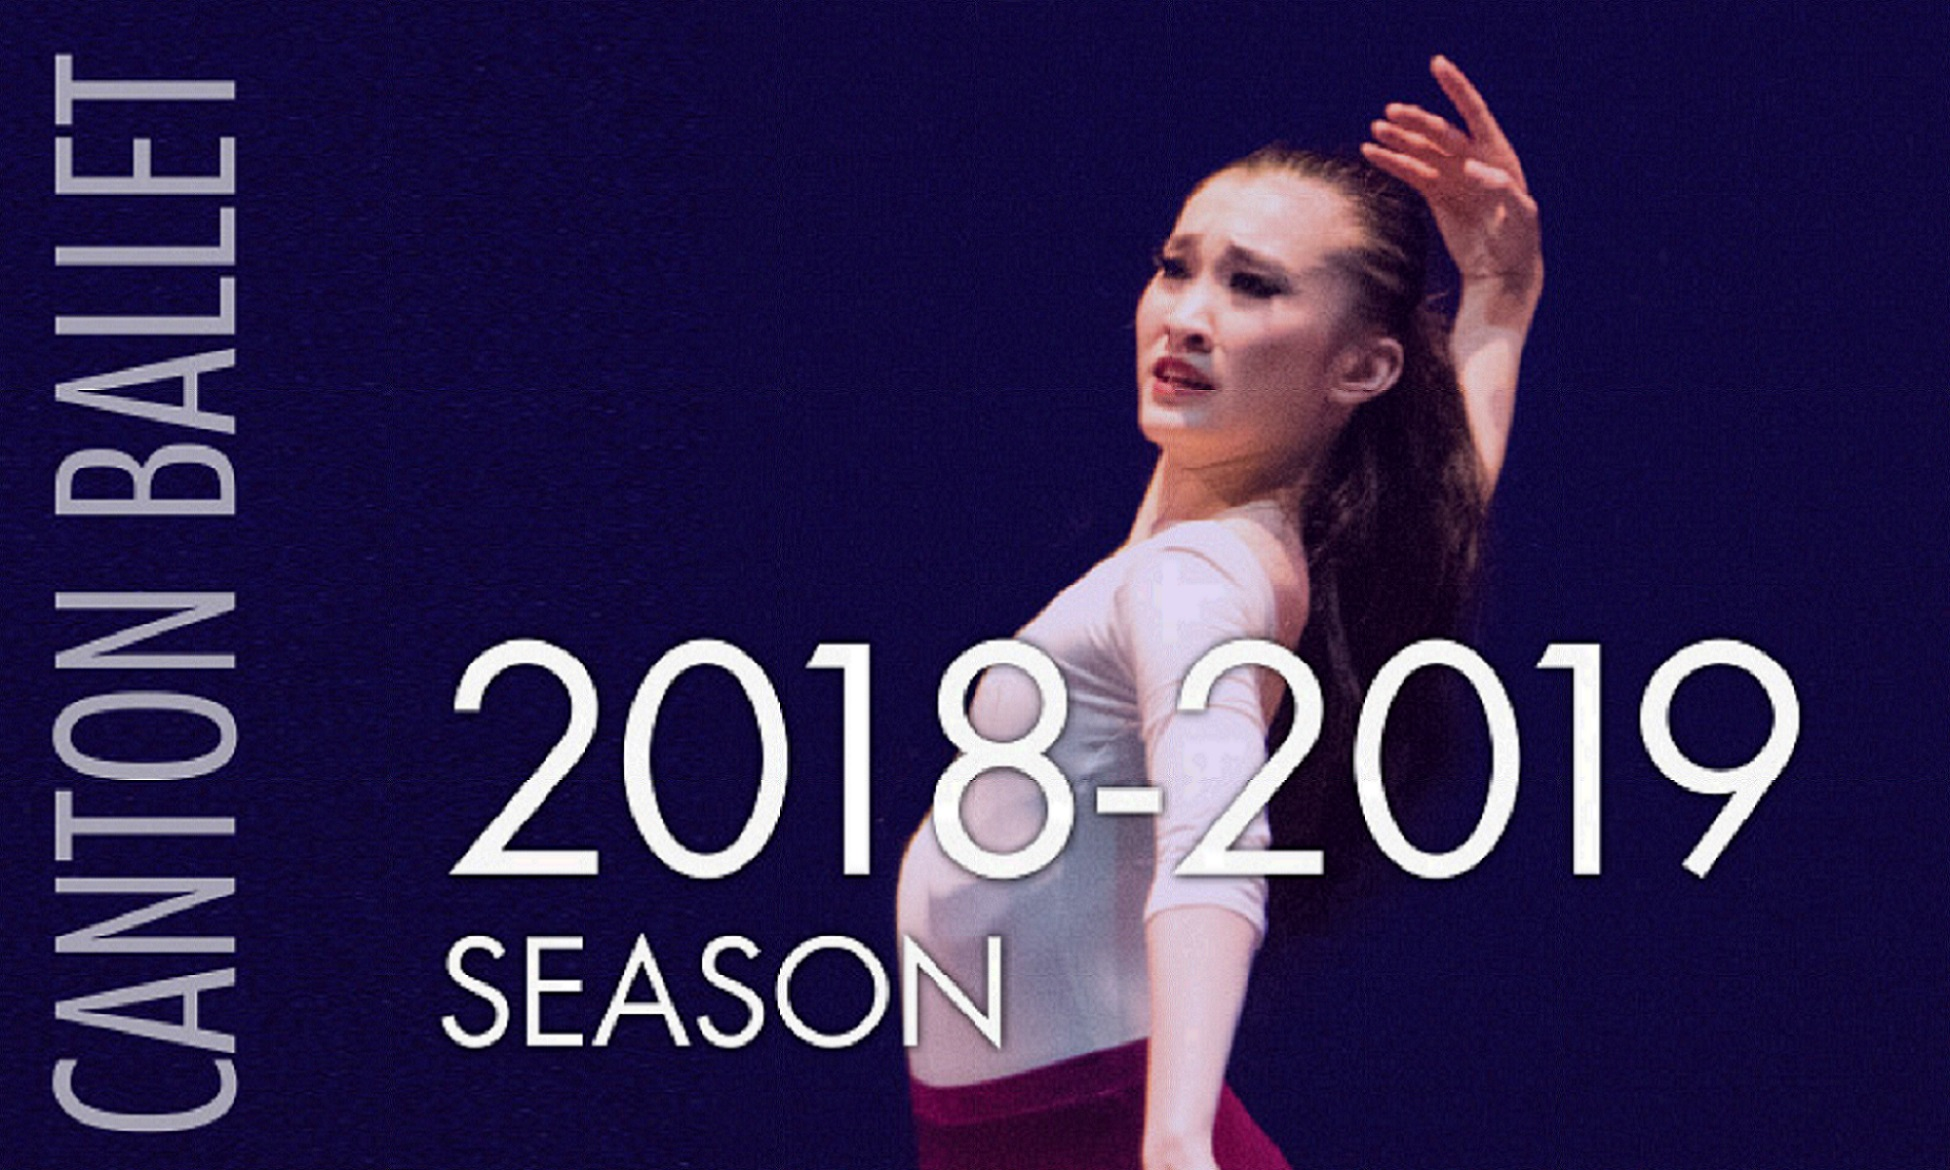 Image for 2018-2019 Subscription  Season - Level B